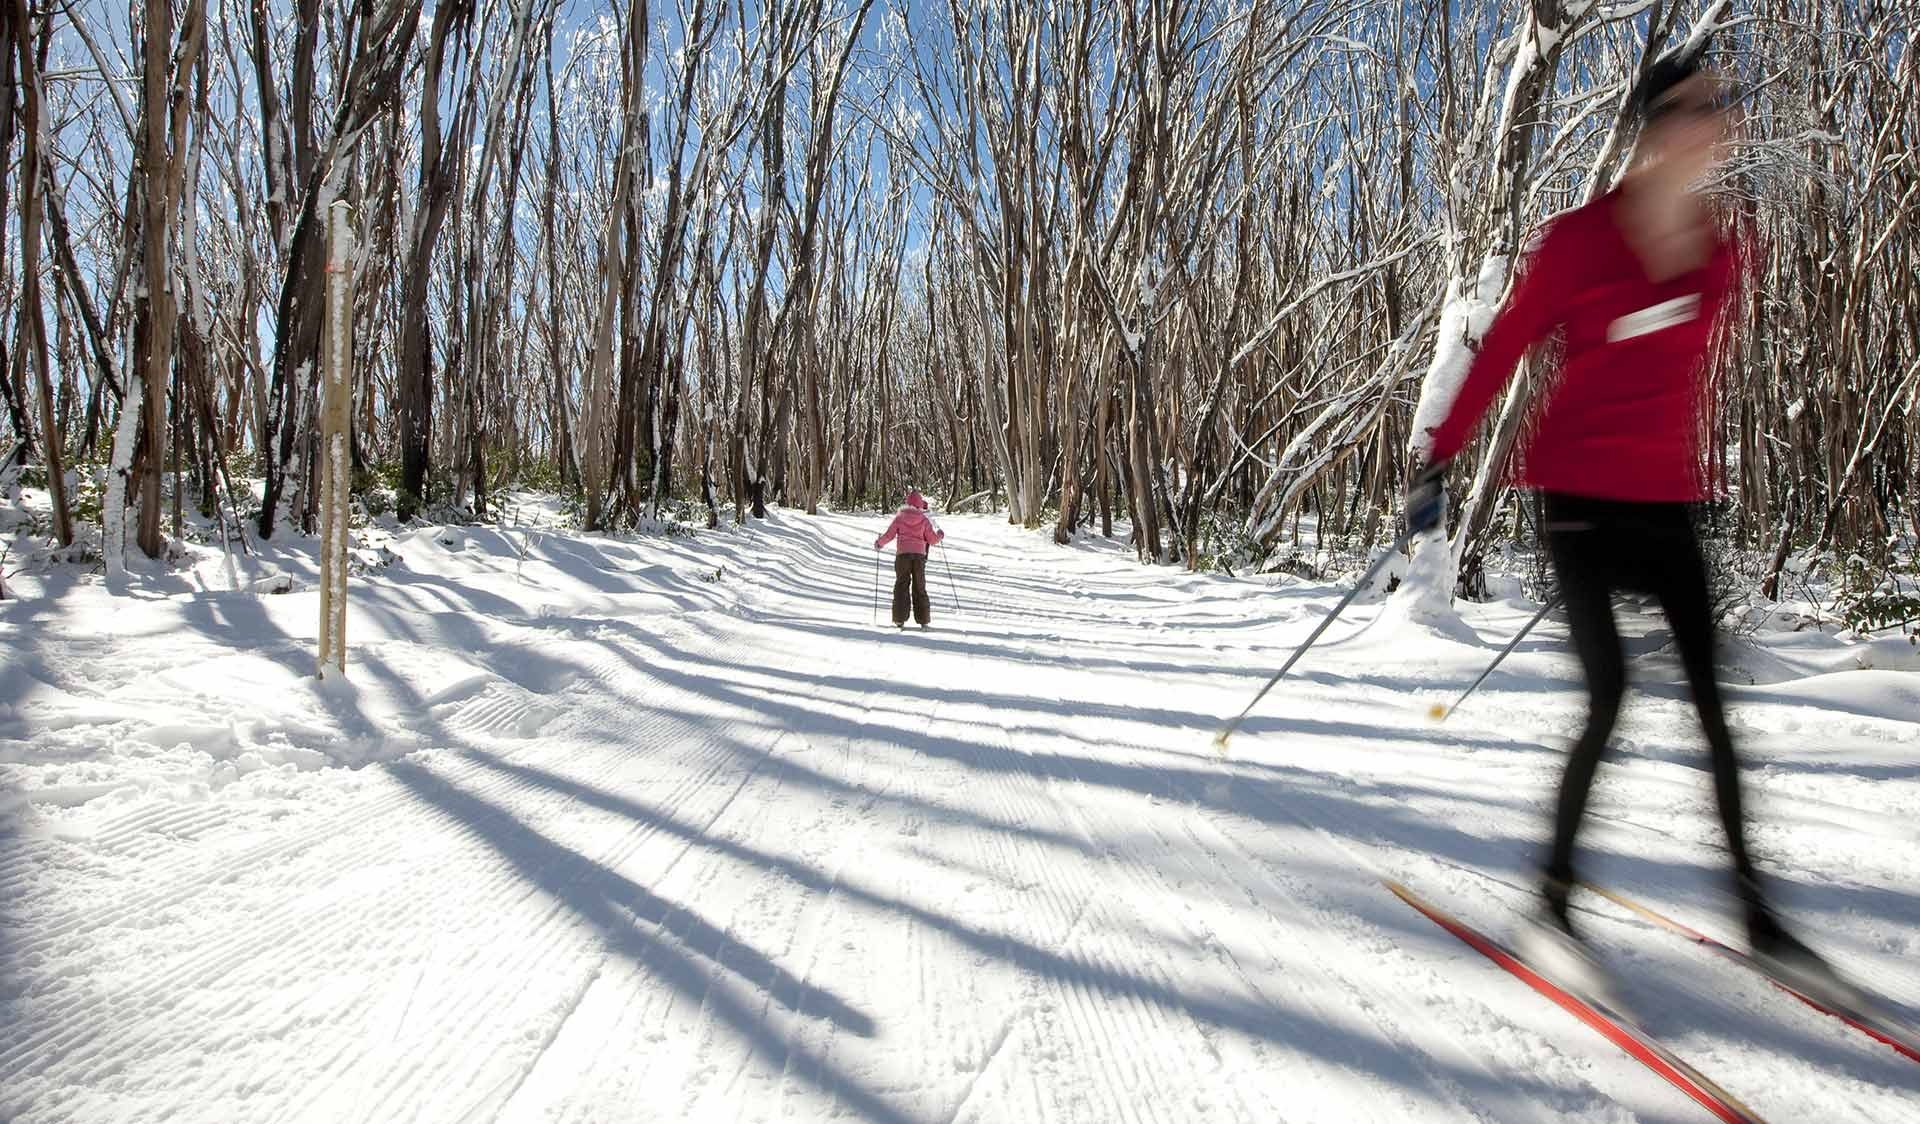 An experienced cross-country skier skis past a small child learning to ski on a maintained path.